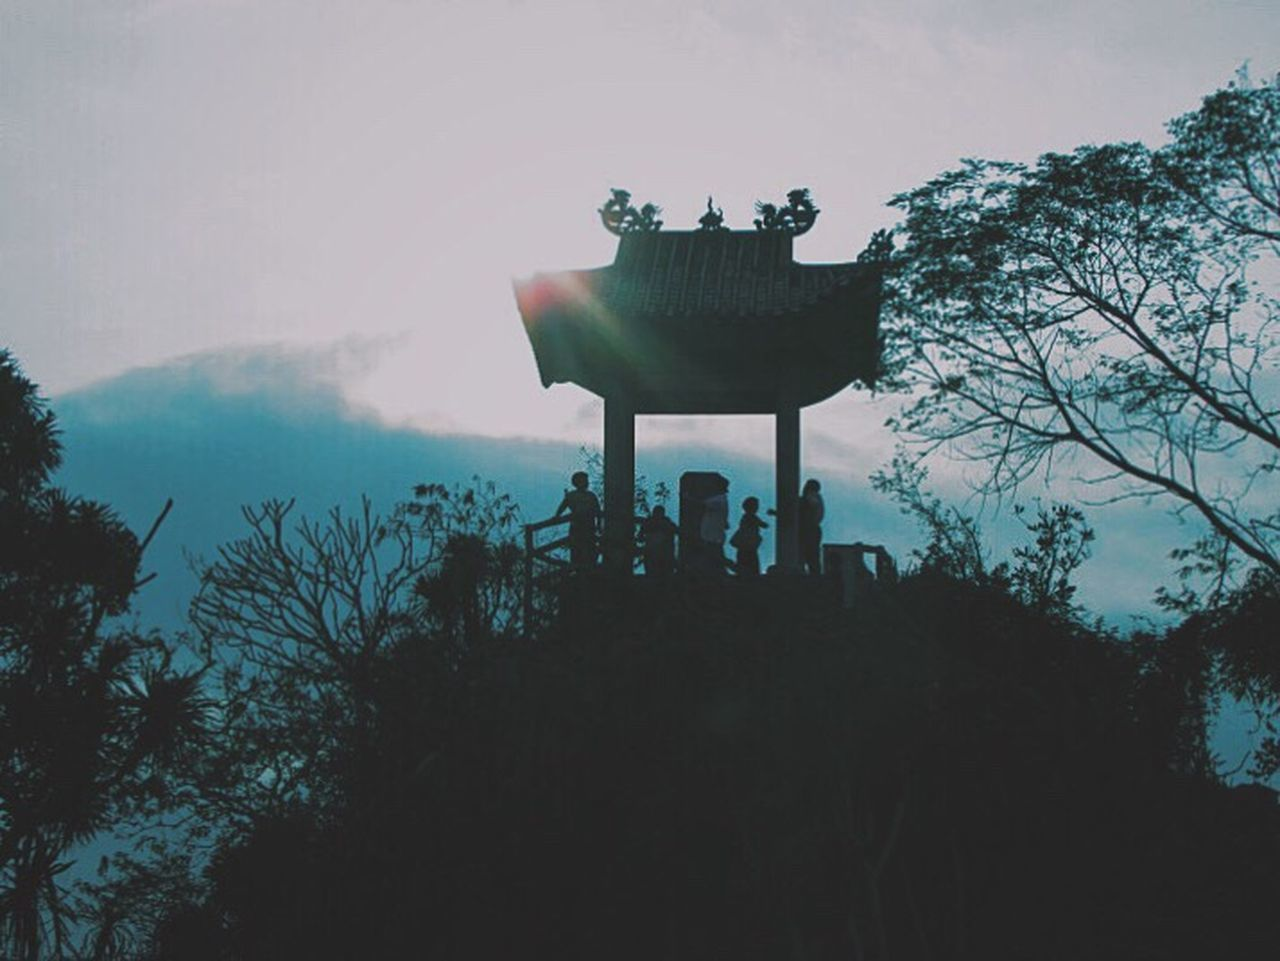 The Architect - 2016 EyeEm Awards Stunning Ngũ Hành Sơn Nguhanhson Ngu Hanh Mountain The Great Outdoors - 2016 EyeEm Awards Mountain View Mountains And Sky Mountain_collection Mountains Mountain Mountain Range Chua Non Nuoc Travel Photography Followme Nghiaocdao Nghiaocdao Amazing Place Beautiful From My Point Of View Vietnam Trip Stunning Sunset The World Around Me Nguhanhson Nice Place